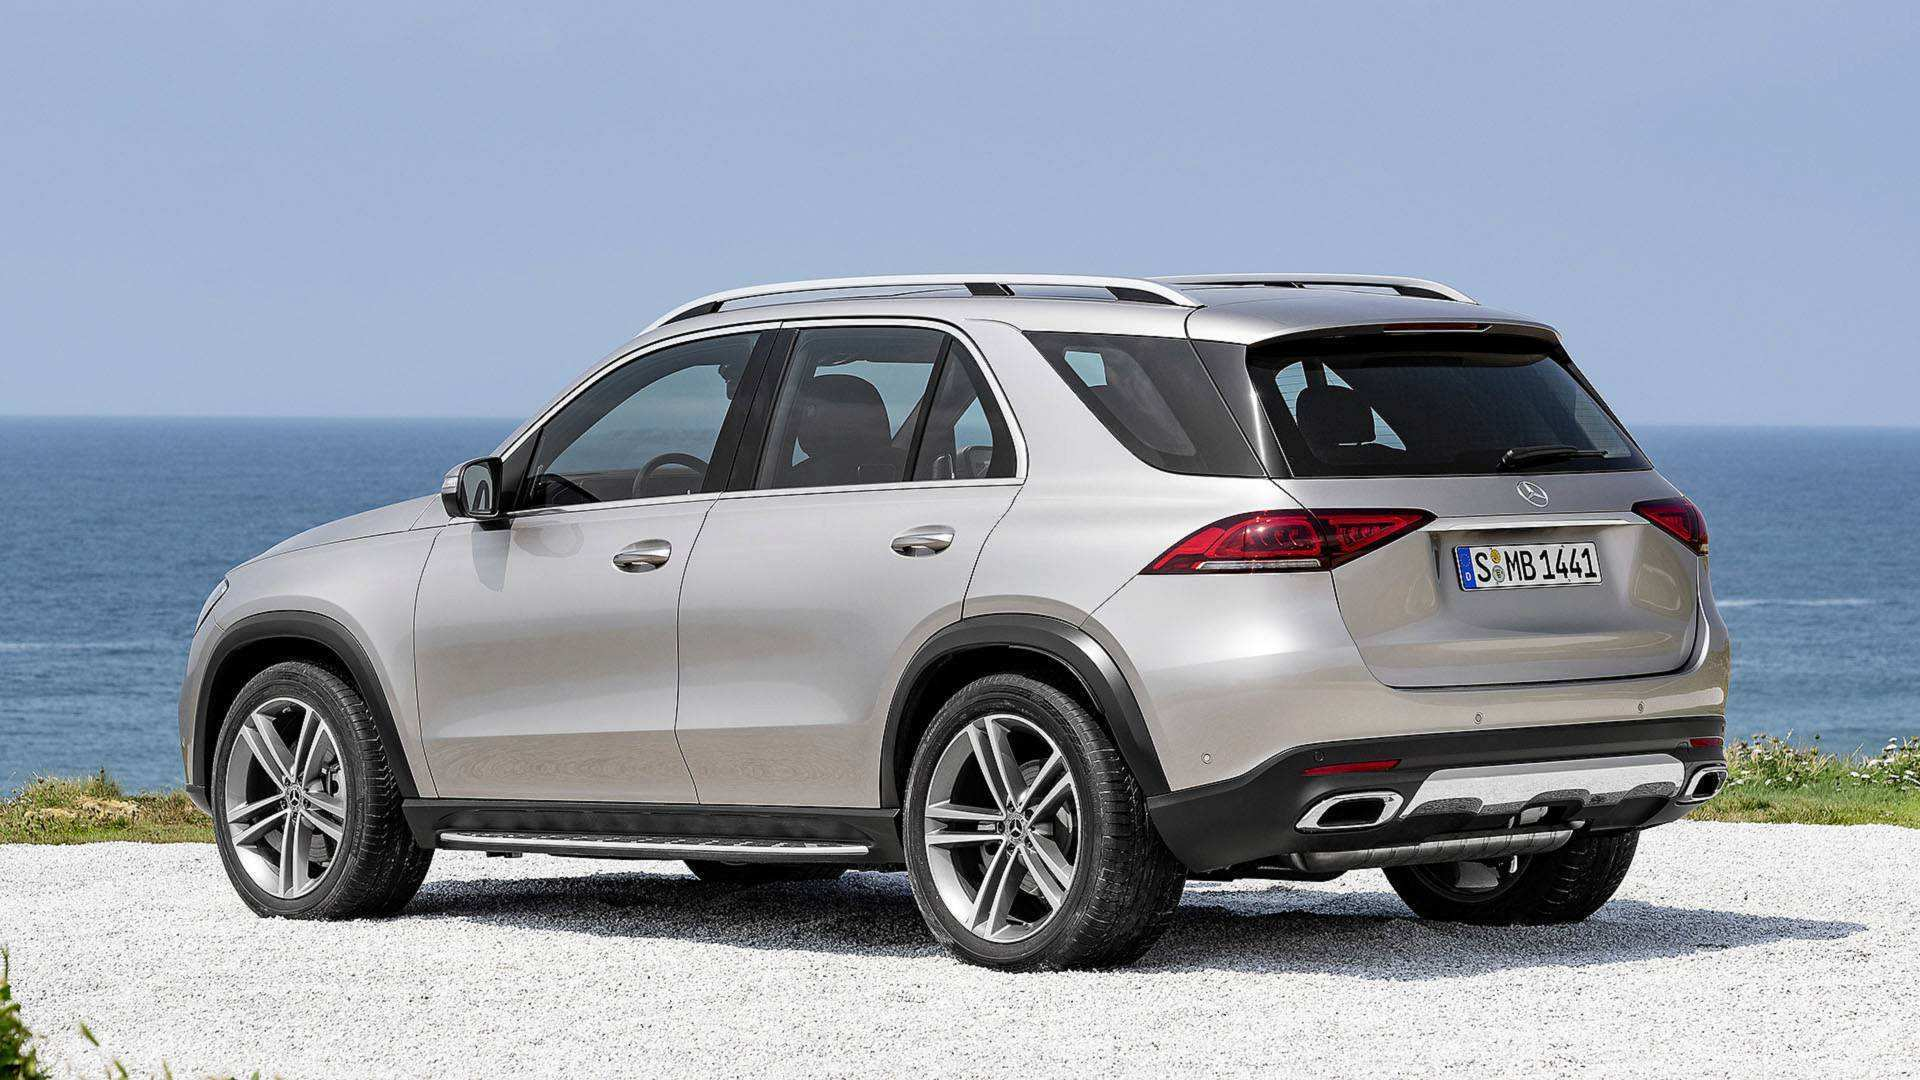 20 Gallery of Gle Mercedes 2019 Pictures with Gle Mercedes 2019